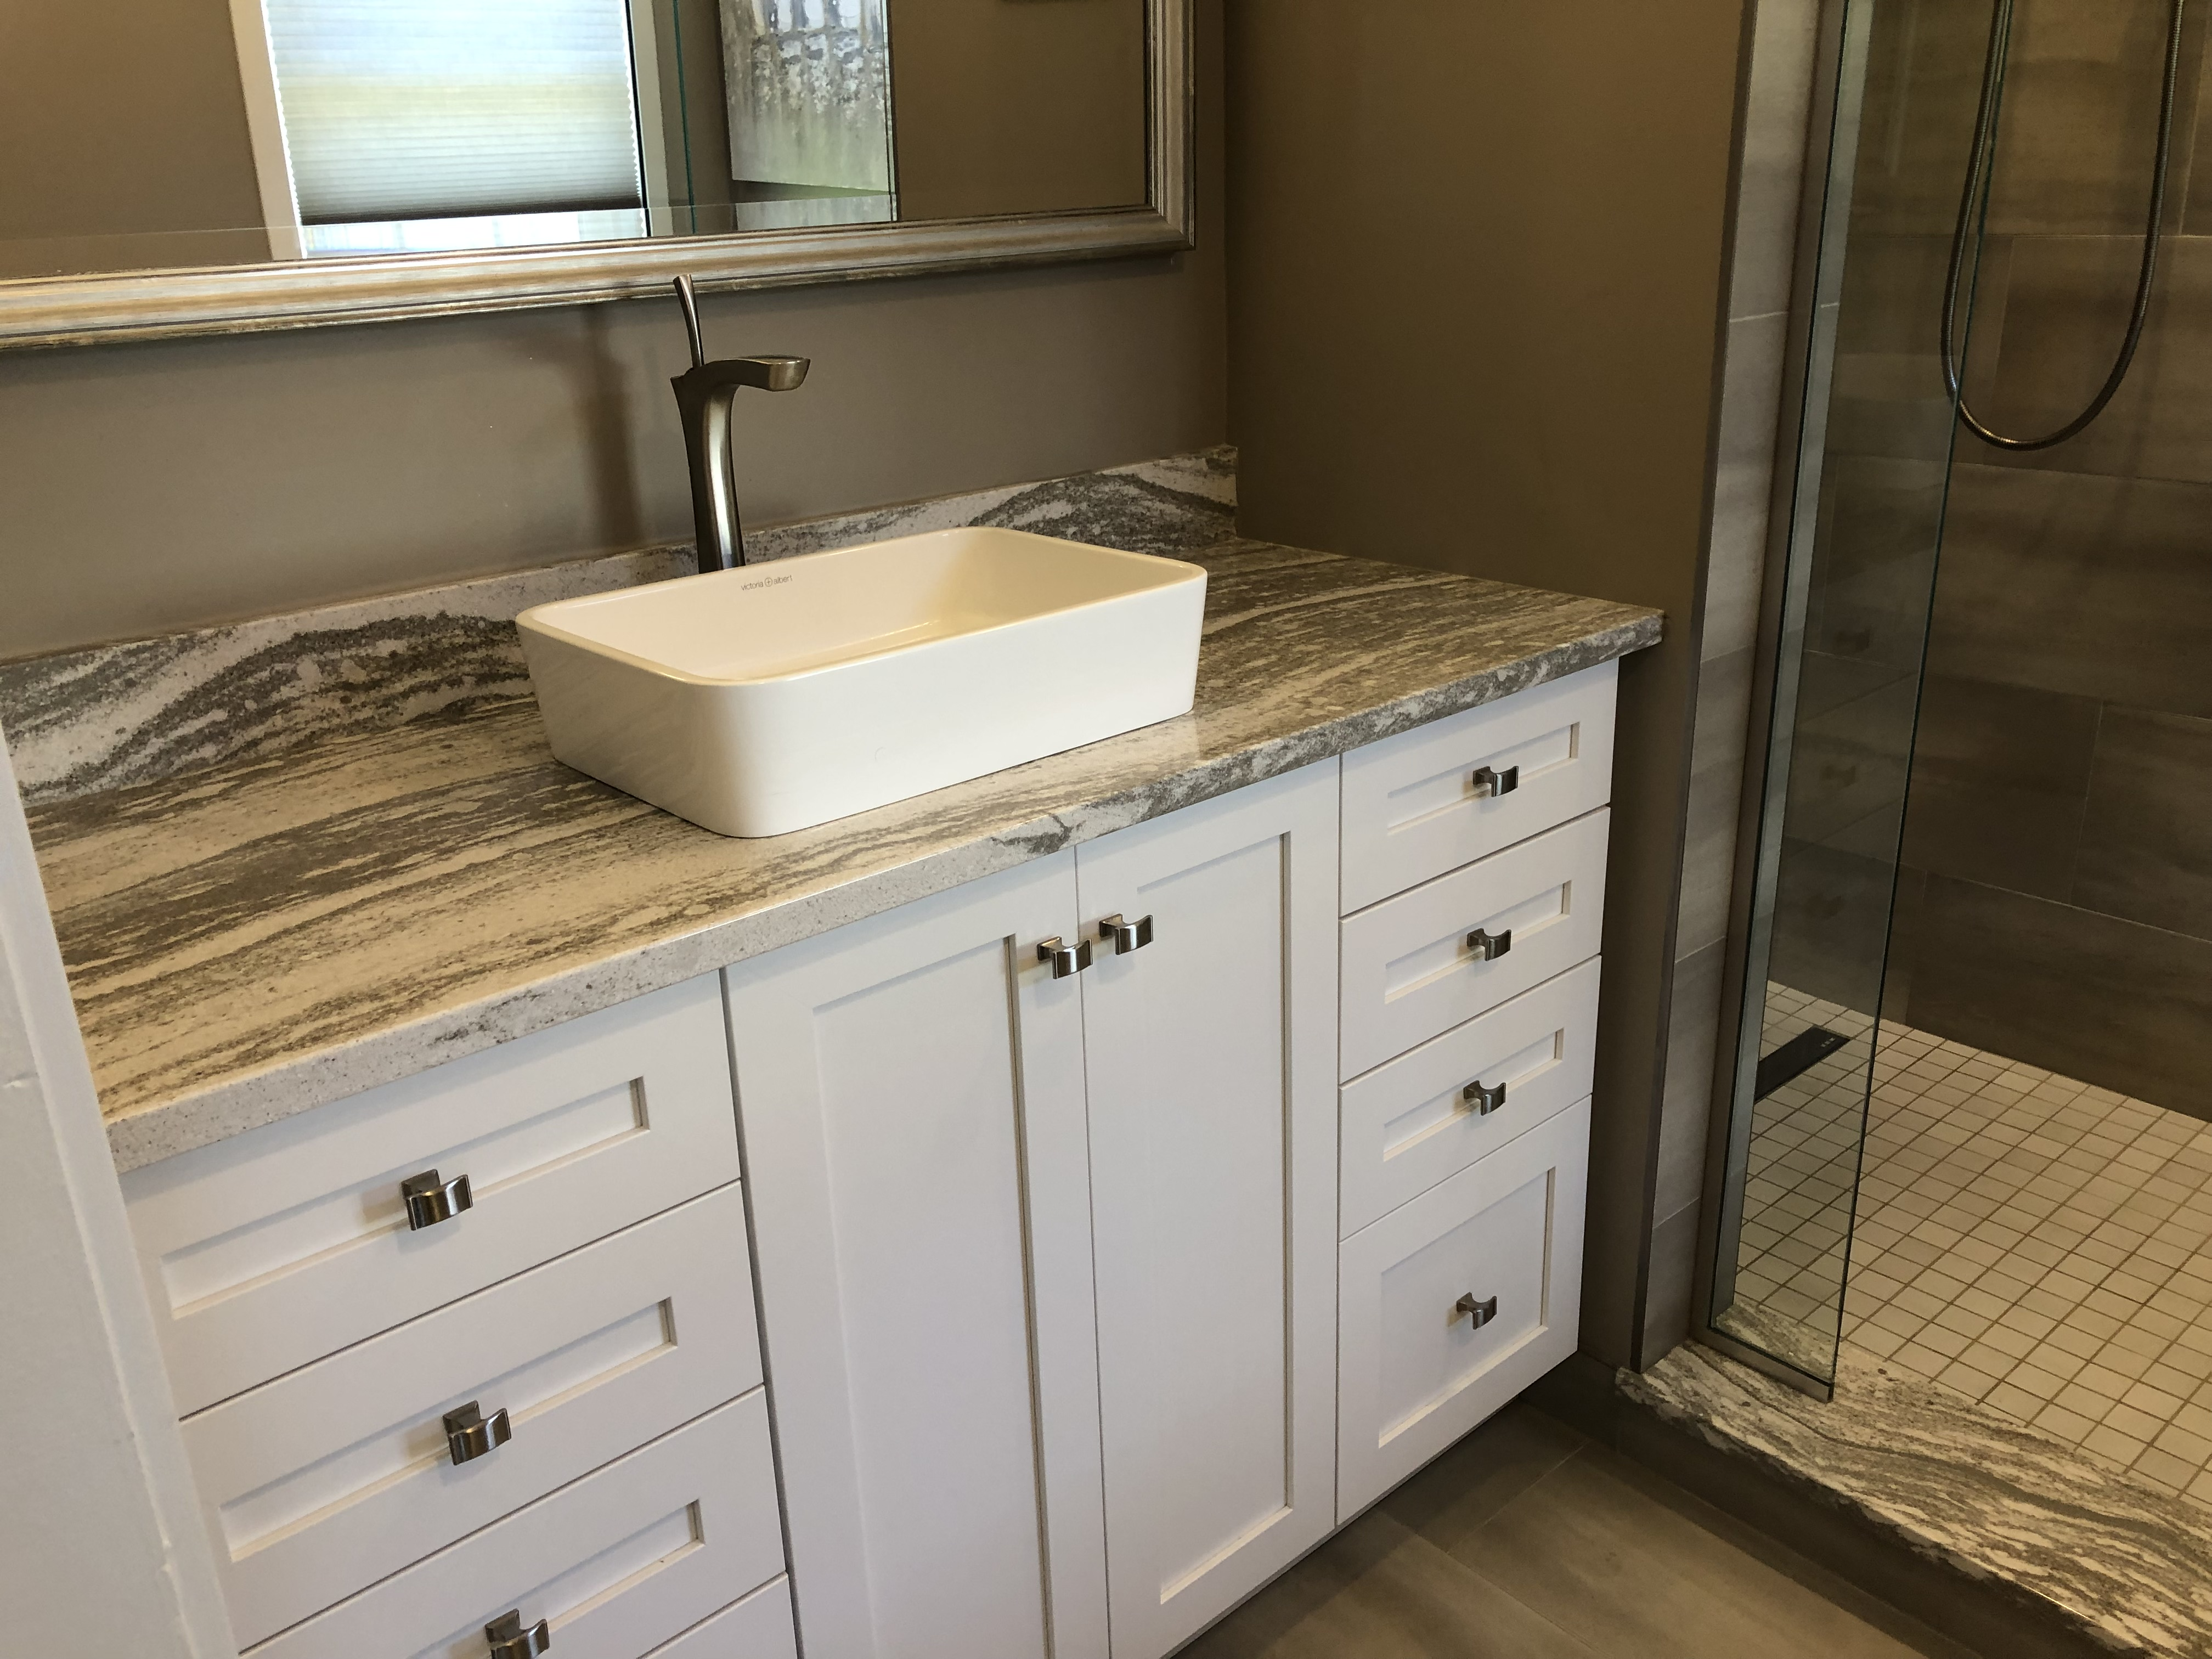 Ensuite sink &cabinetry